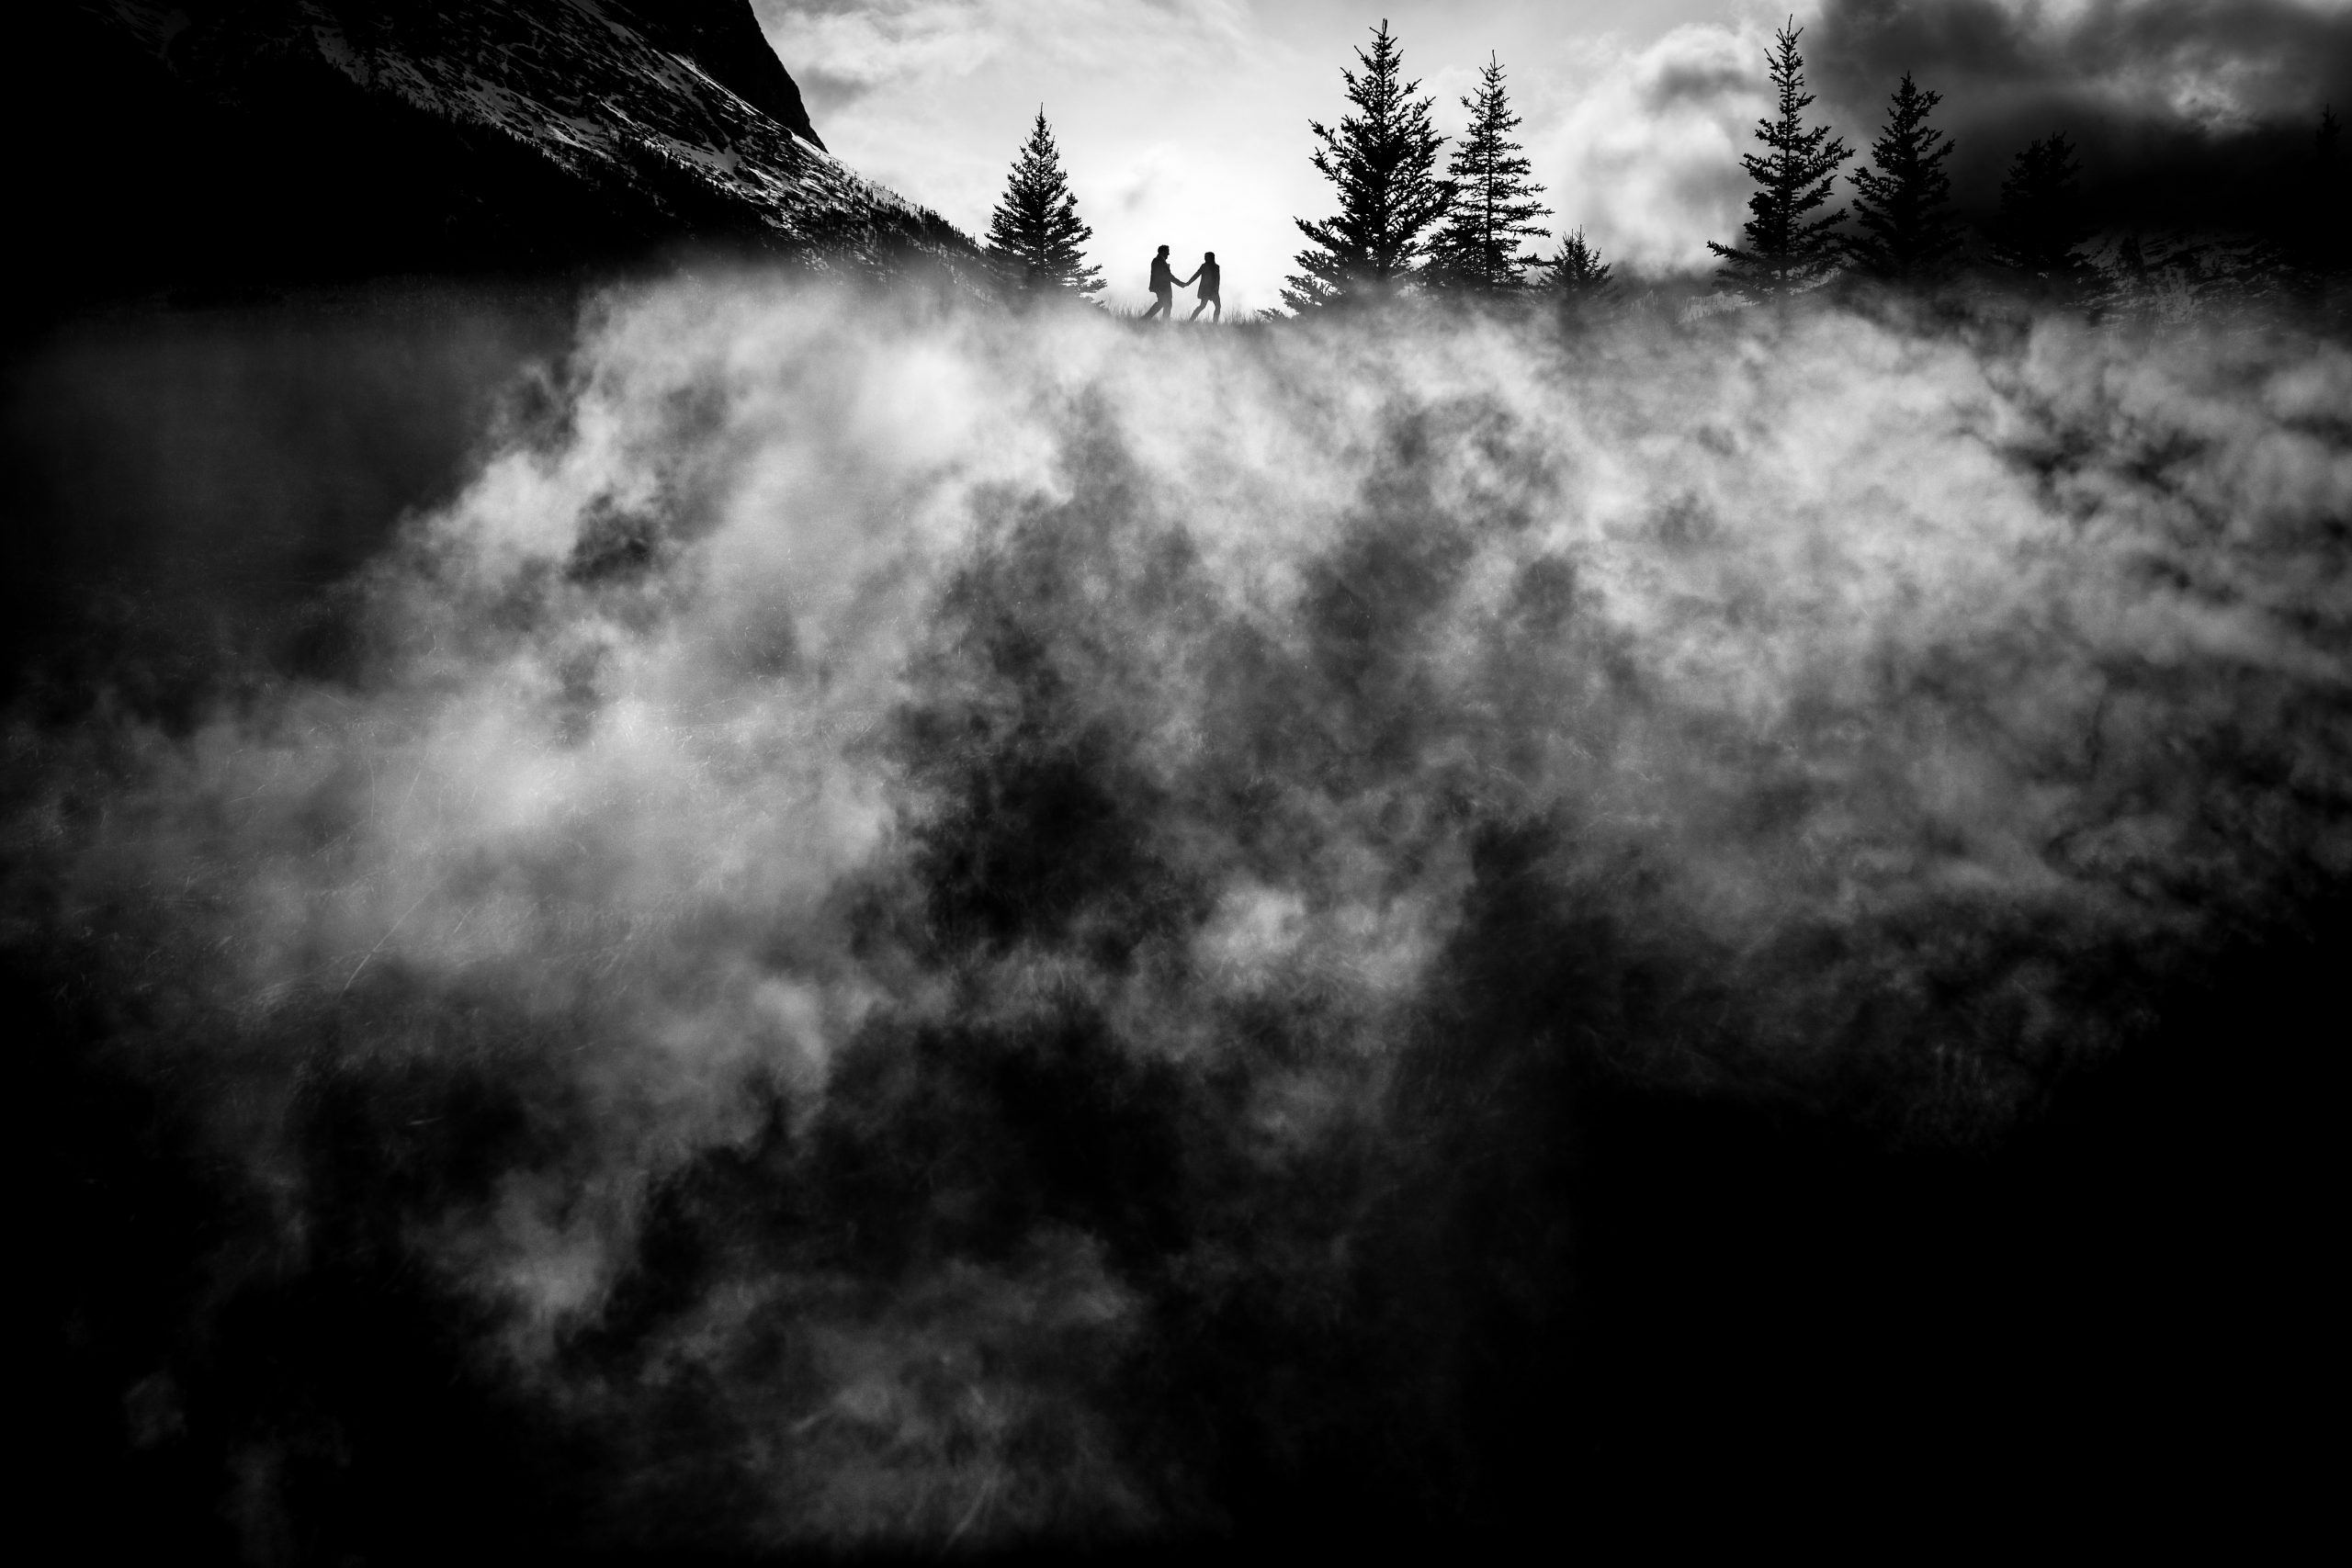 Silhouette of bride and groom walking hand in hand on top of the Rockies shrouded by clouds and fog